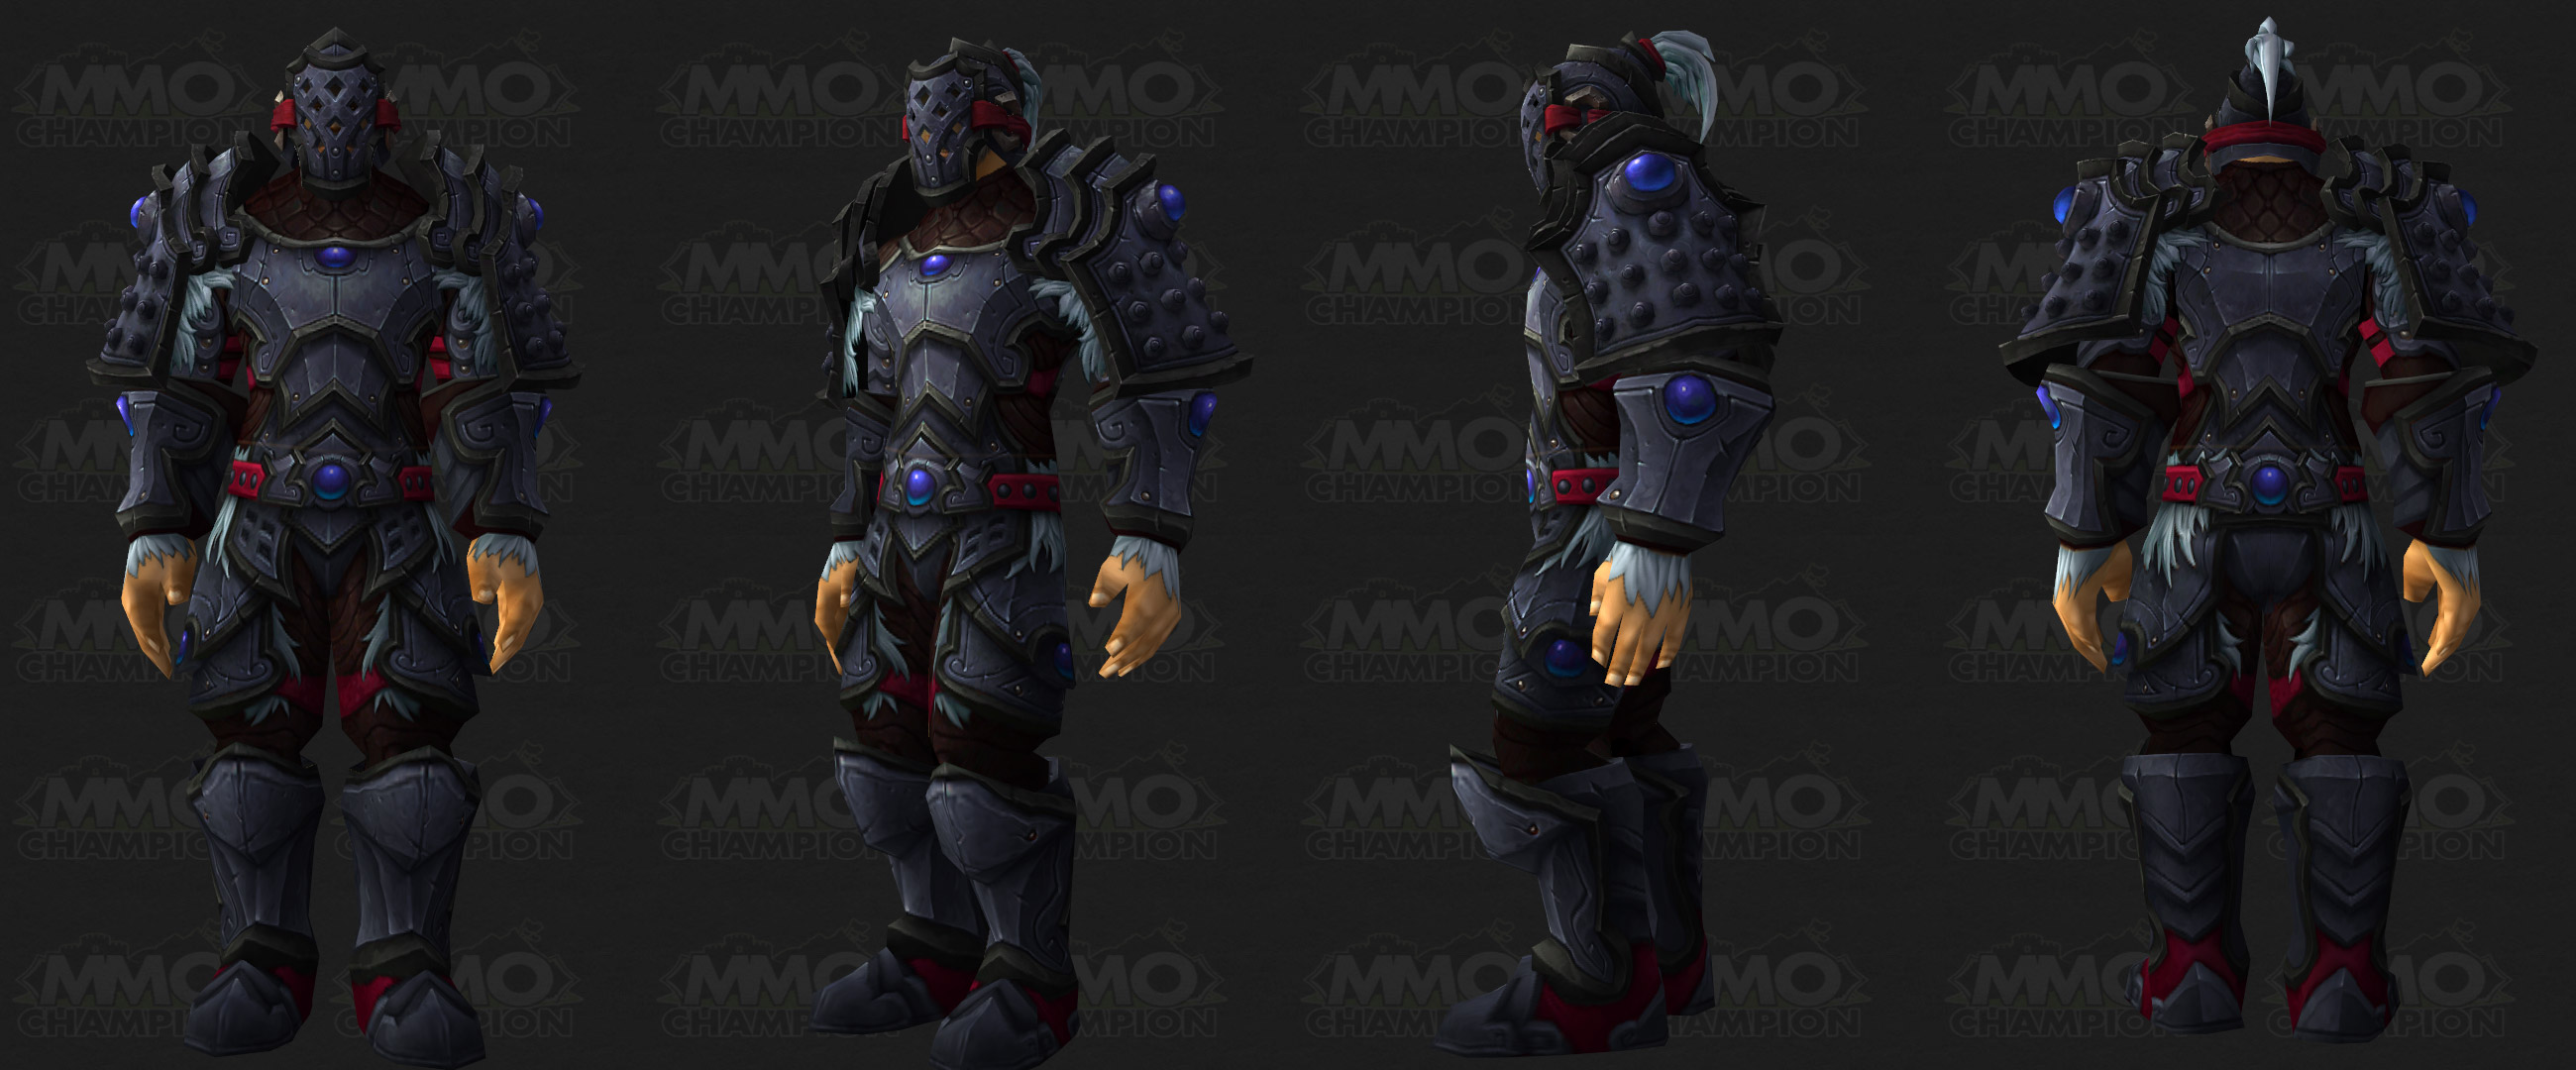 how to wear plate in vanilla wow